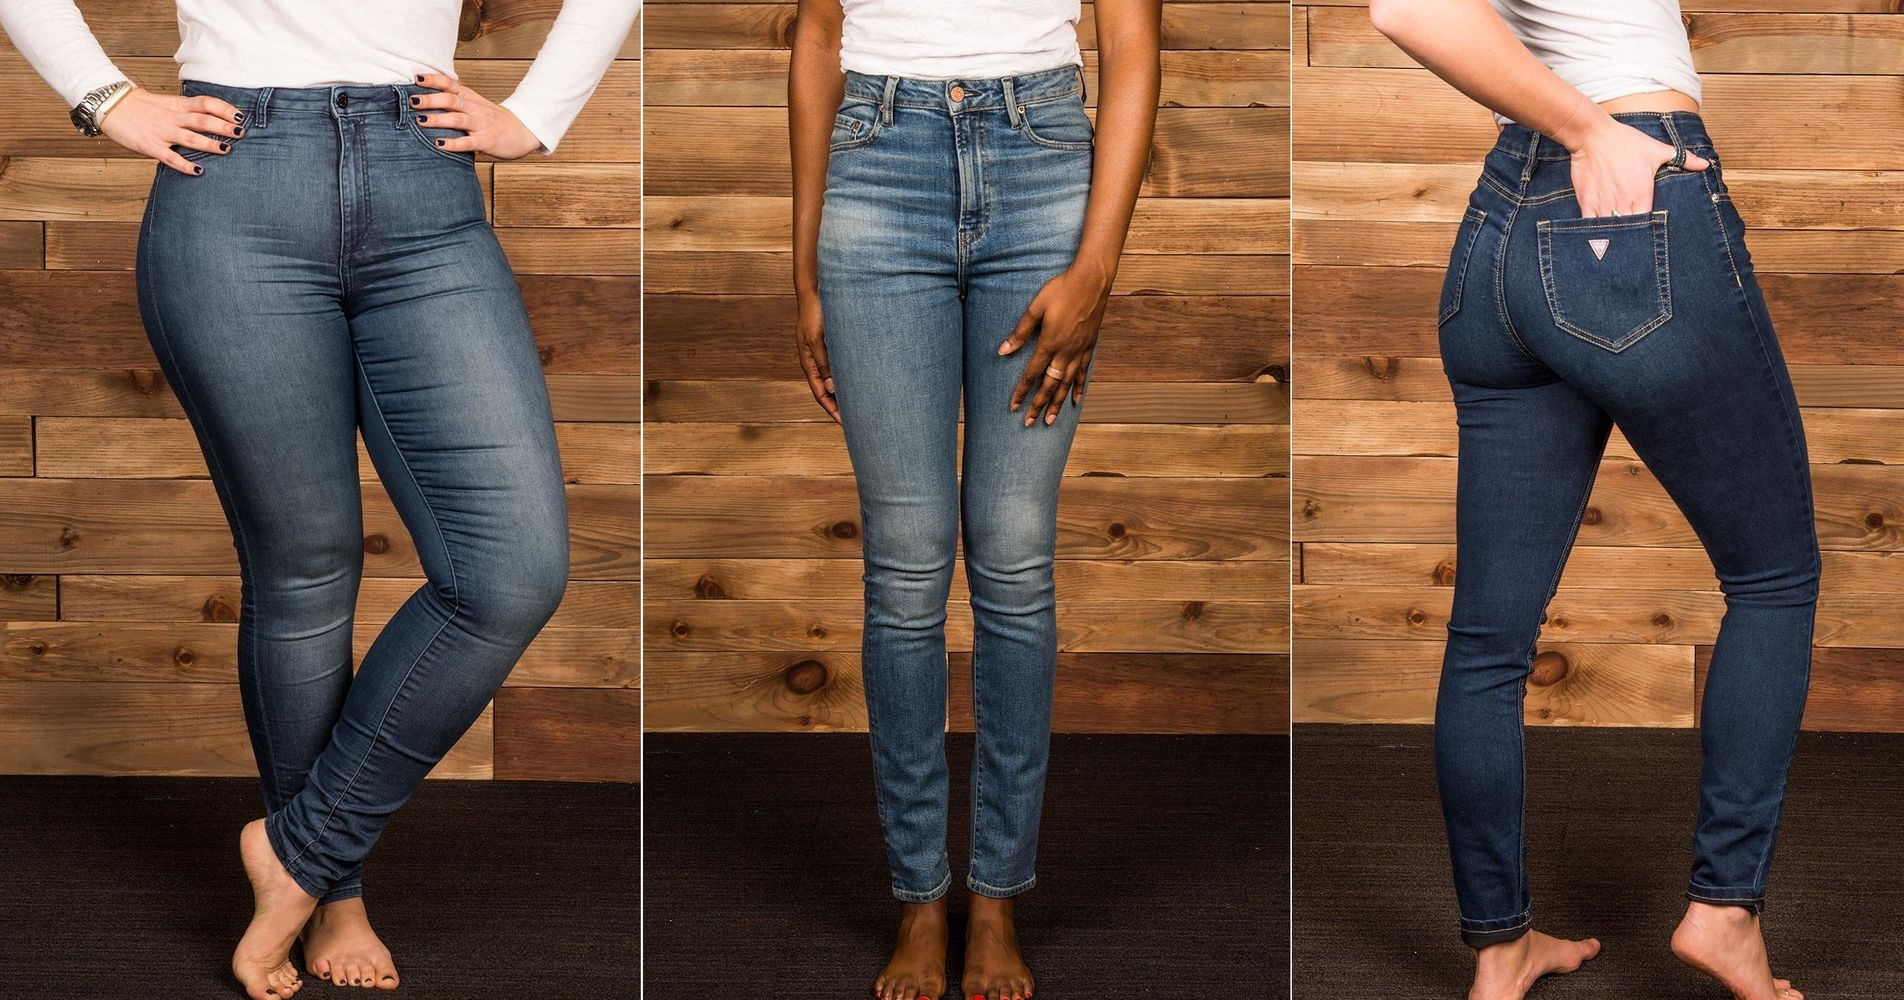 11 Women Get Refreshingly Real About Finding Jeans That